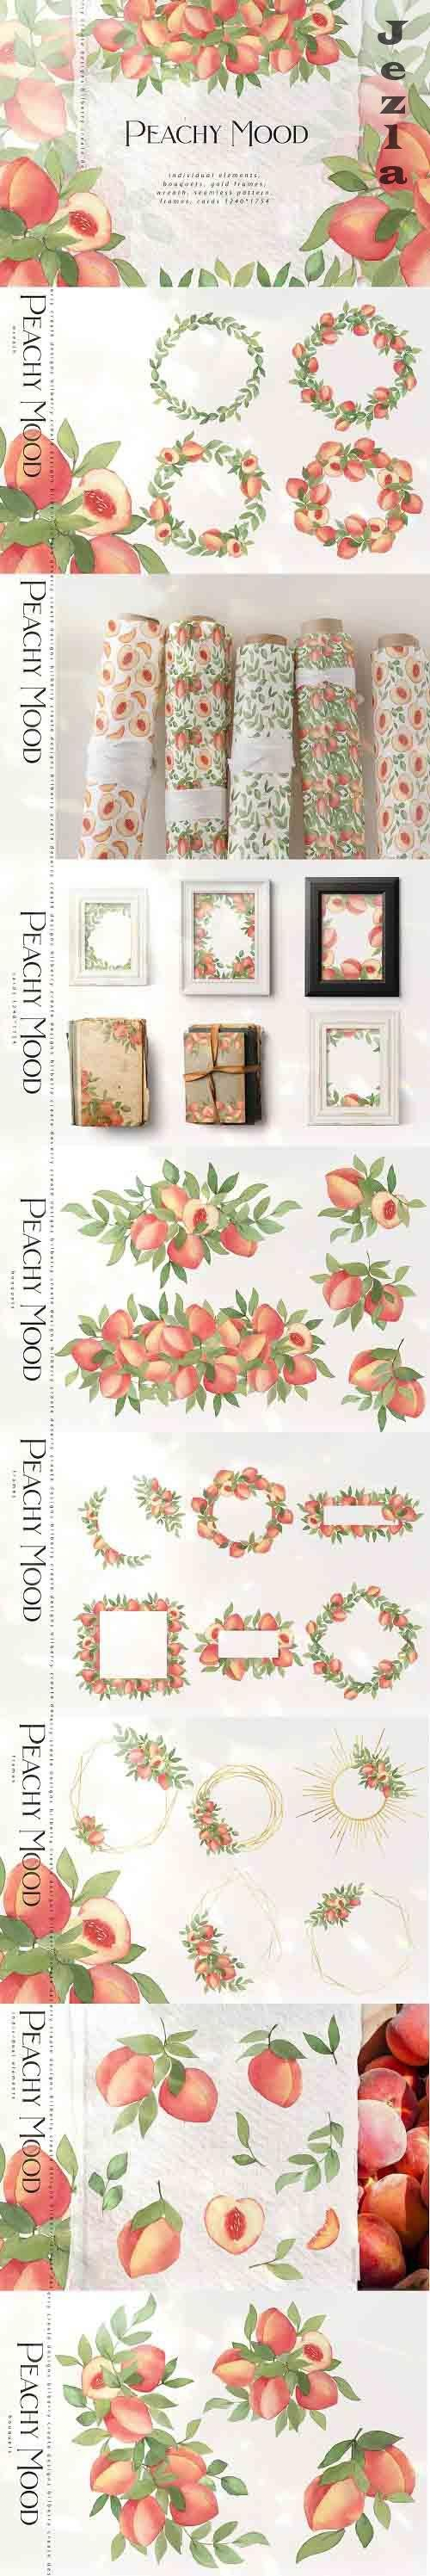 Peachy Mood collection - 6047013